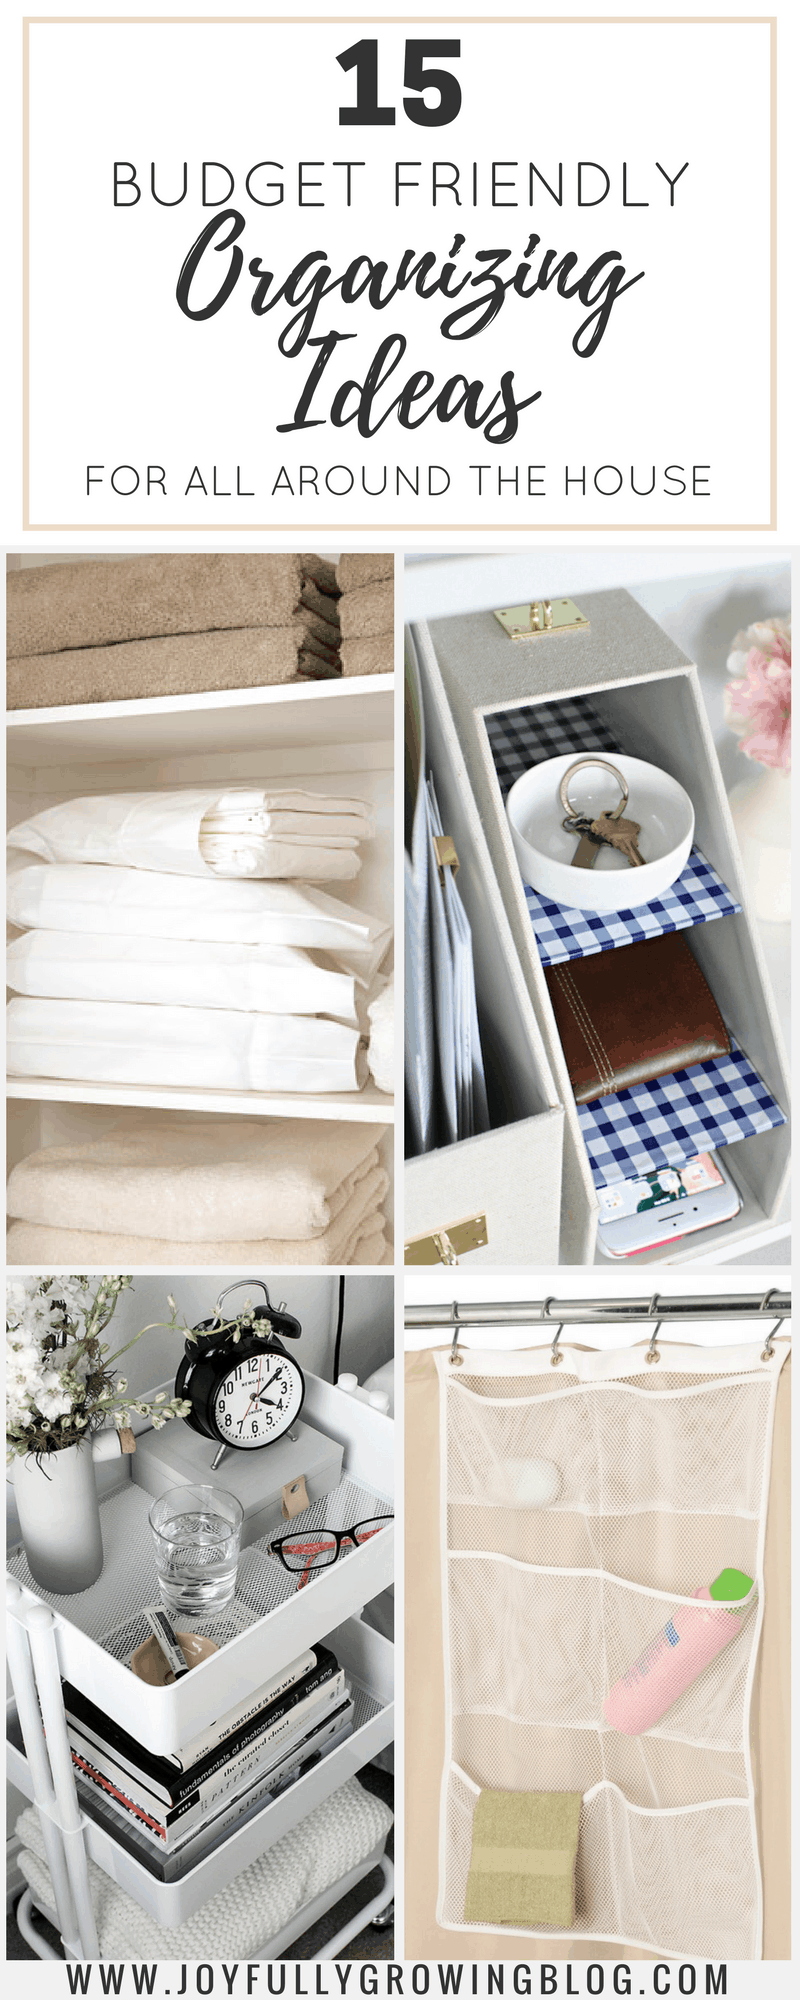 "A collage of 4 different organizing solutions with text overlay that reads, ""15 Budget Friendly Organization Ideas for All Around the House"""